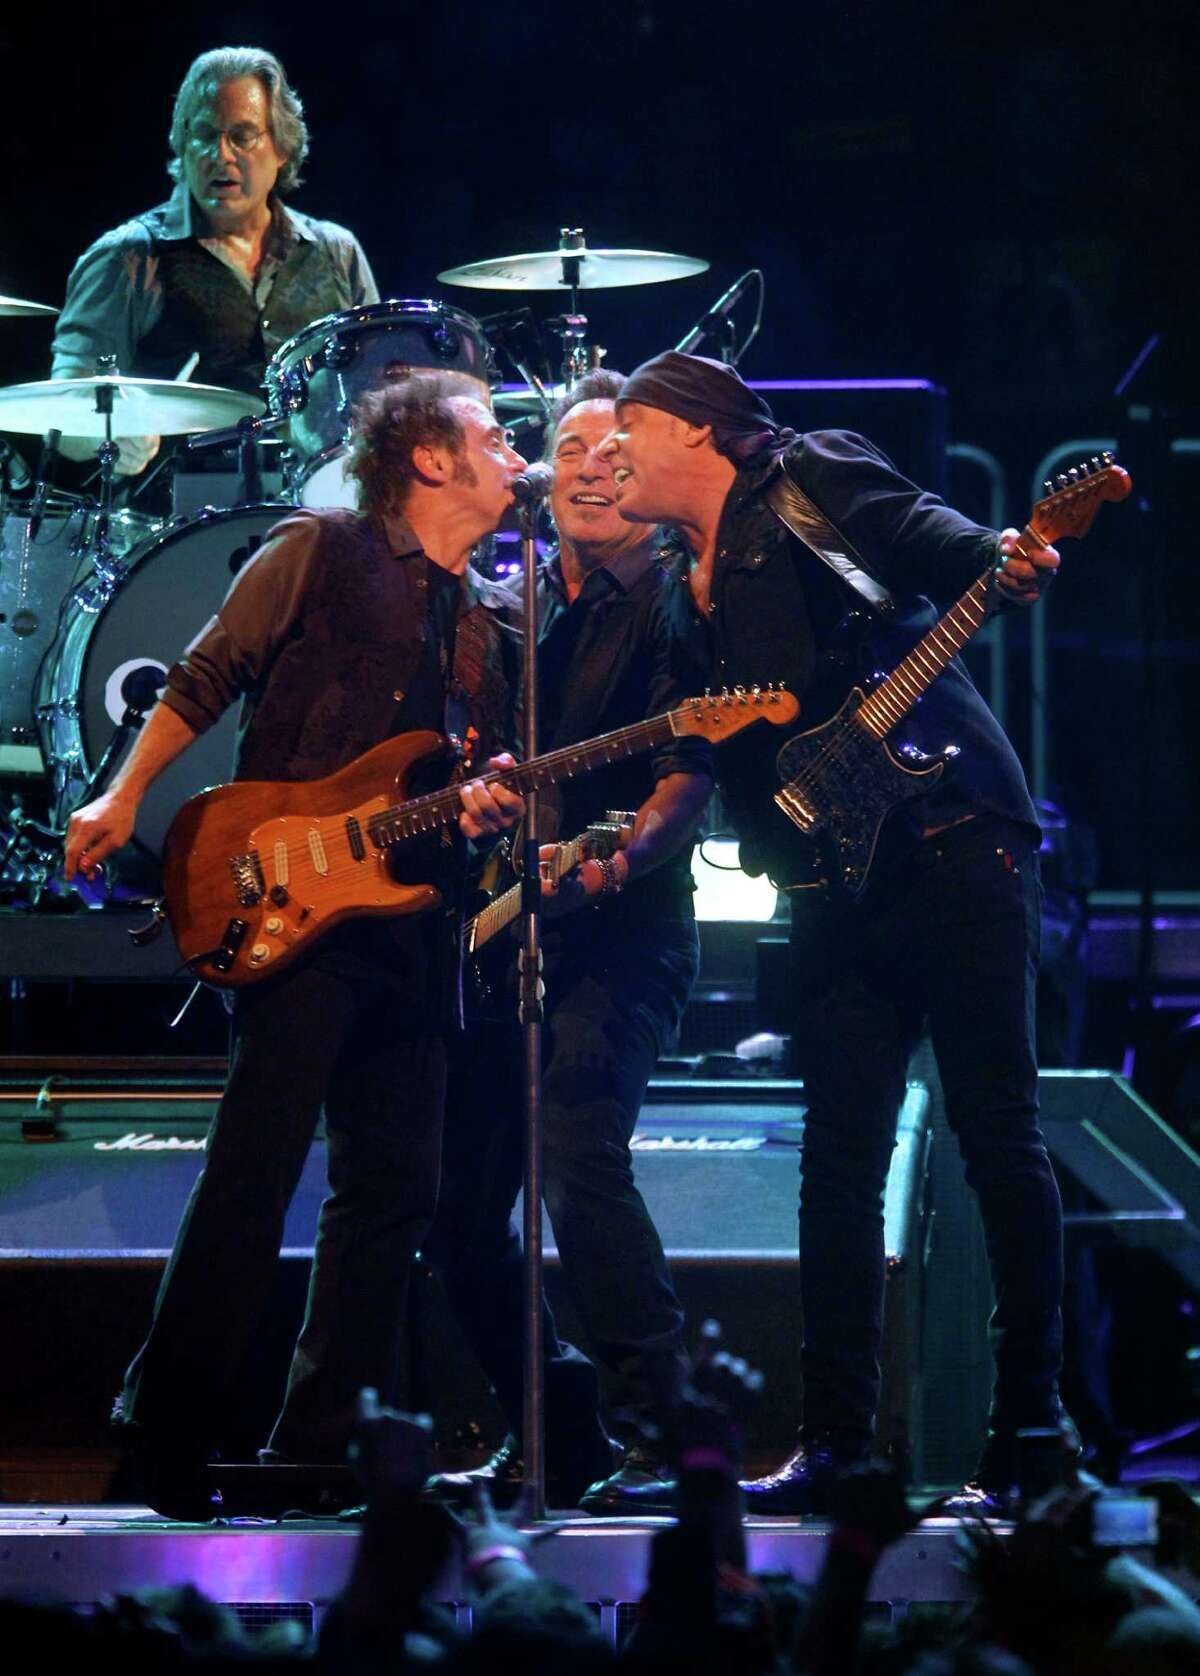 Bruce Springsteen, center, performs with E Street Band members Max Weinberg, drums, Nils Lofgren, left, and Steven Van Zandt, right, during a concert at Madison Square Garden, Friday, April 6, 2012 in New York.